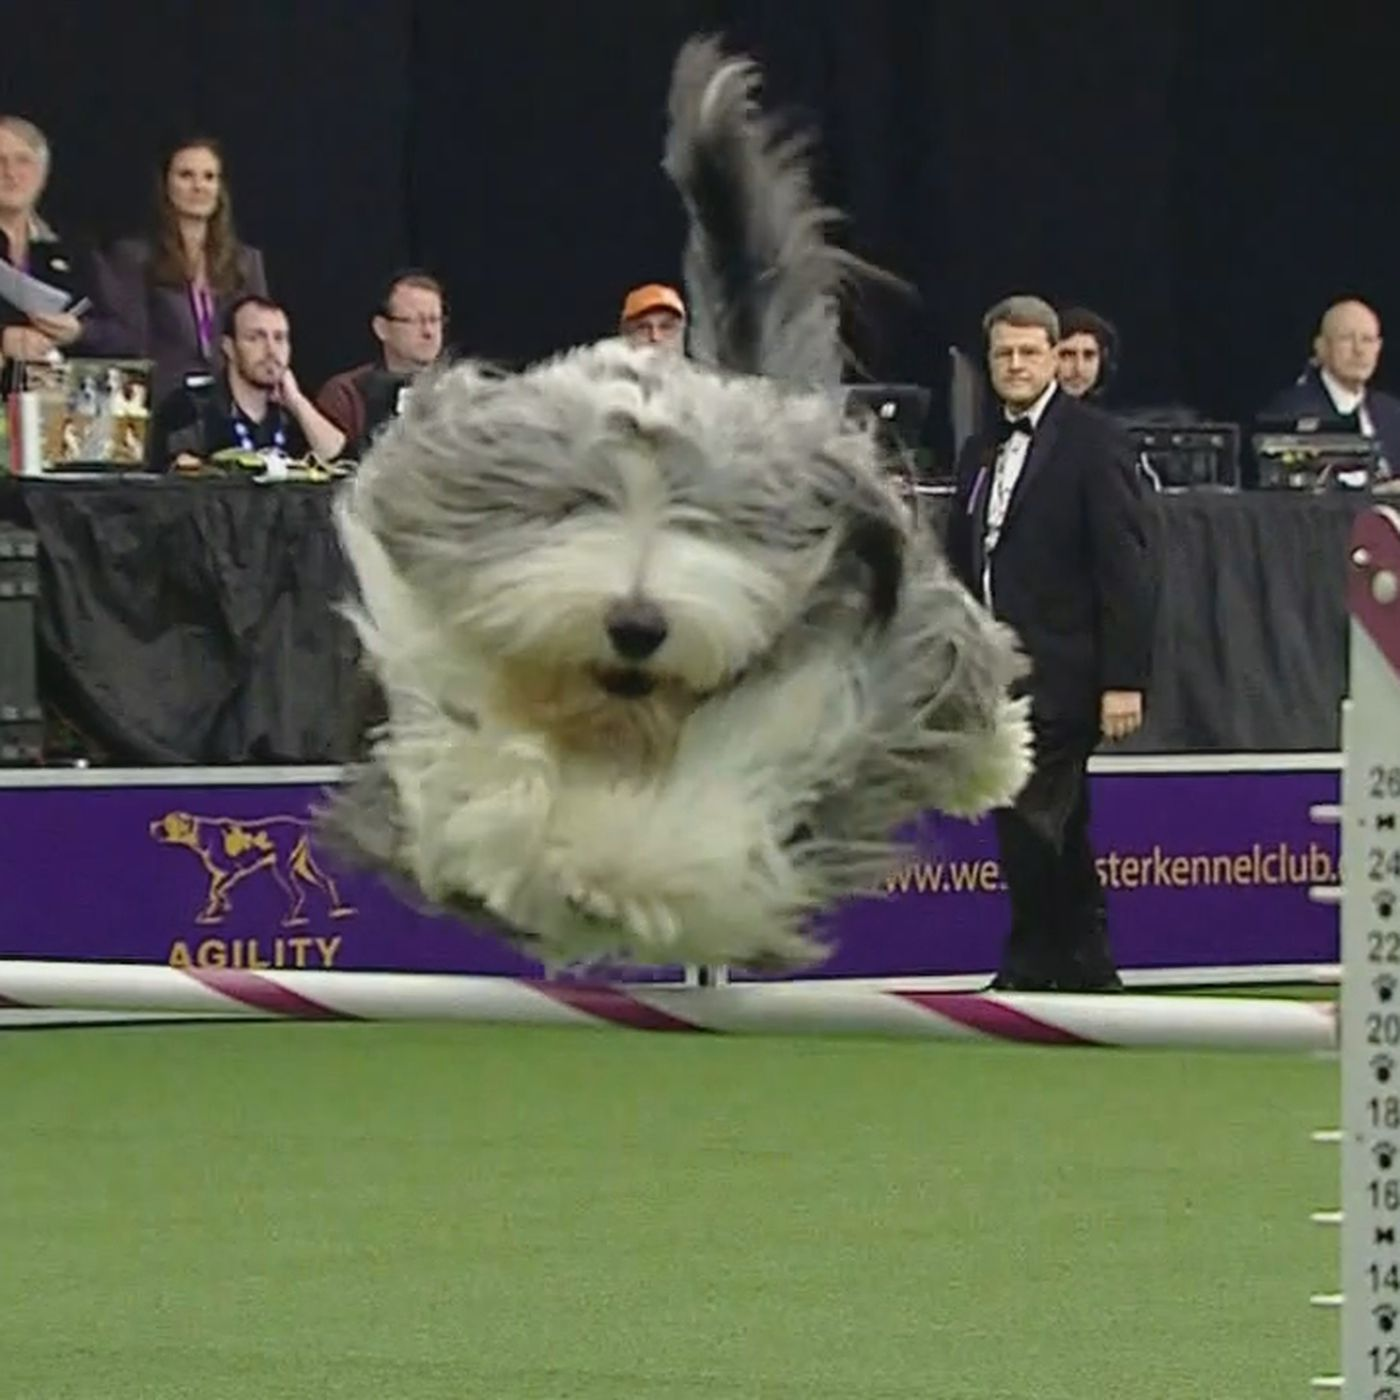 Bing the bearded collie wrecked the game at the Masters